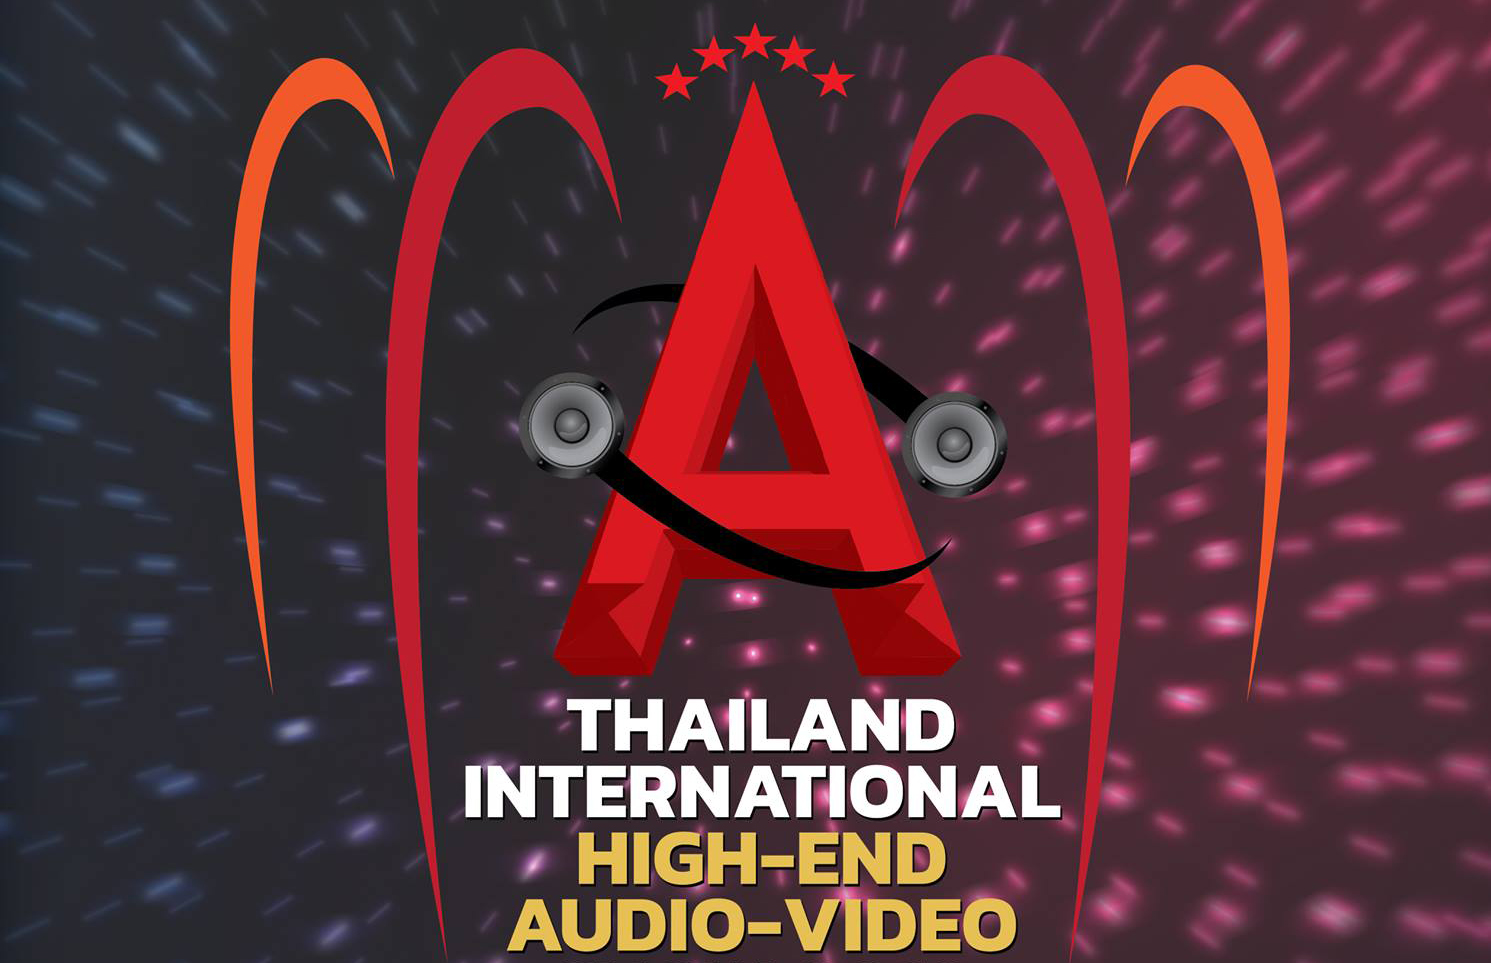 Thailand International High-End Audio-Video Show